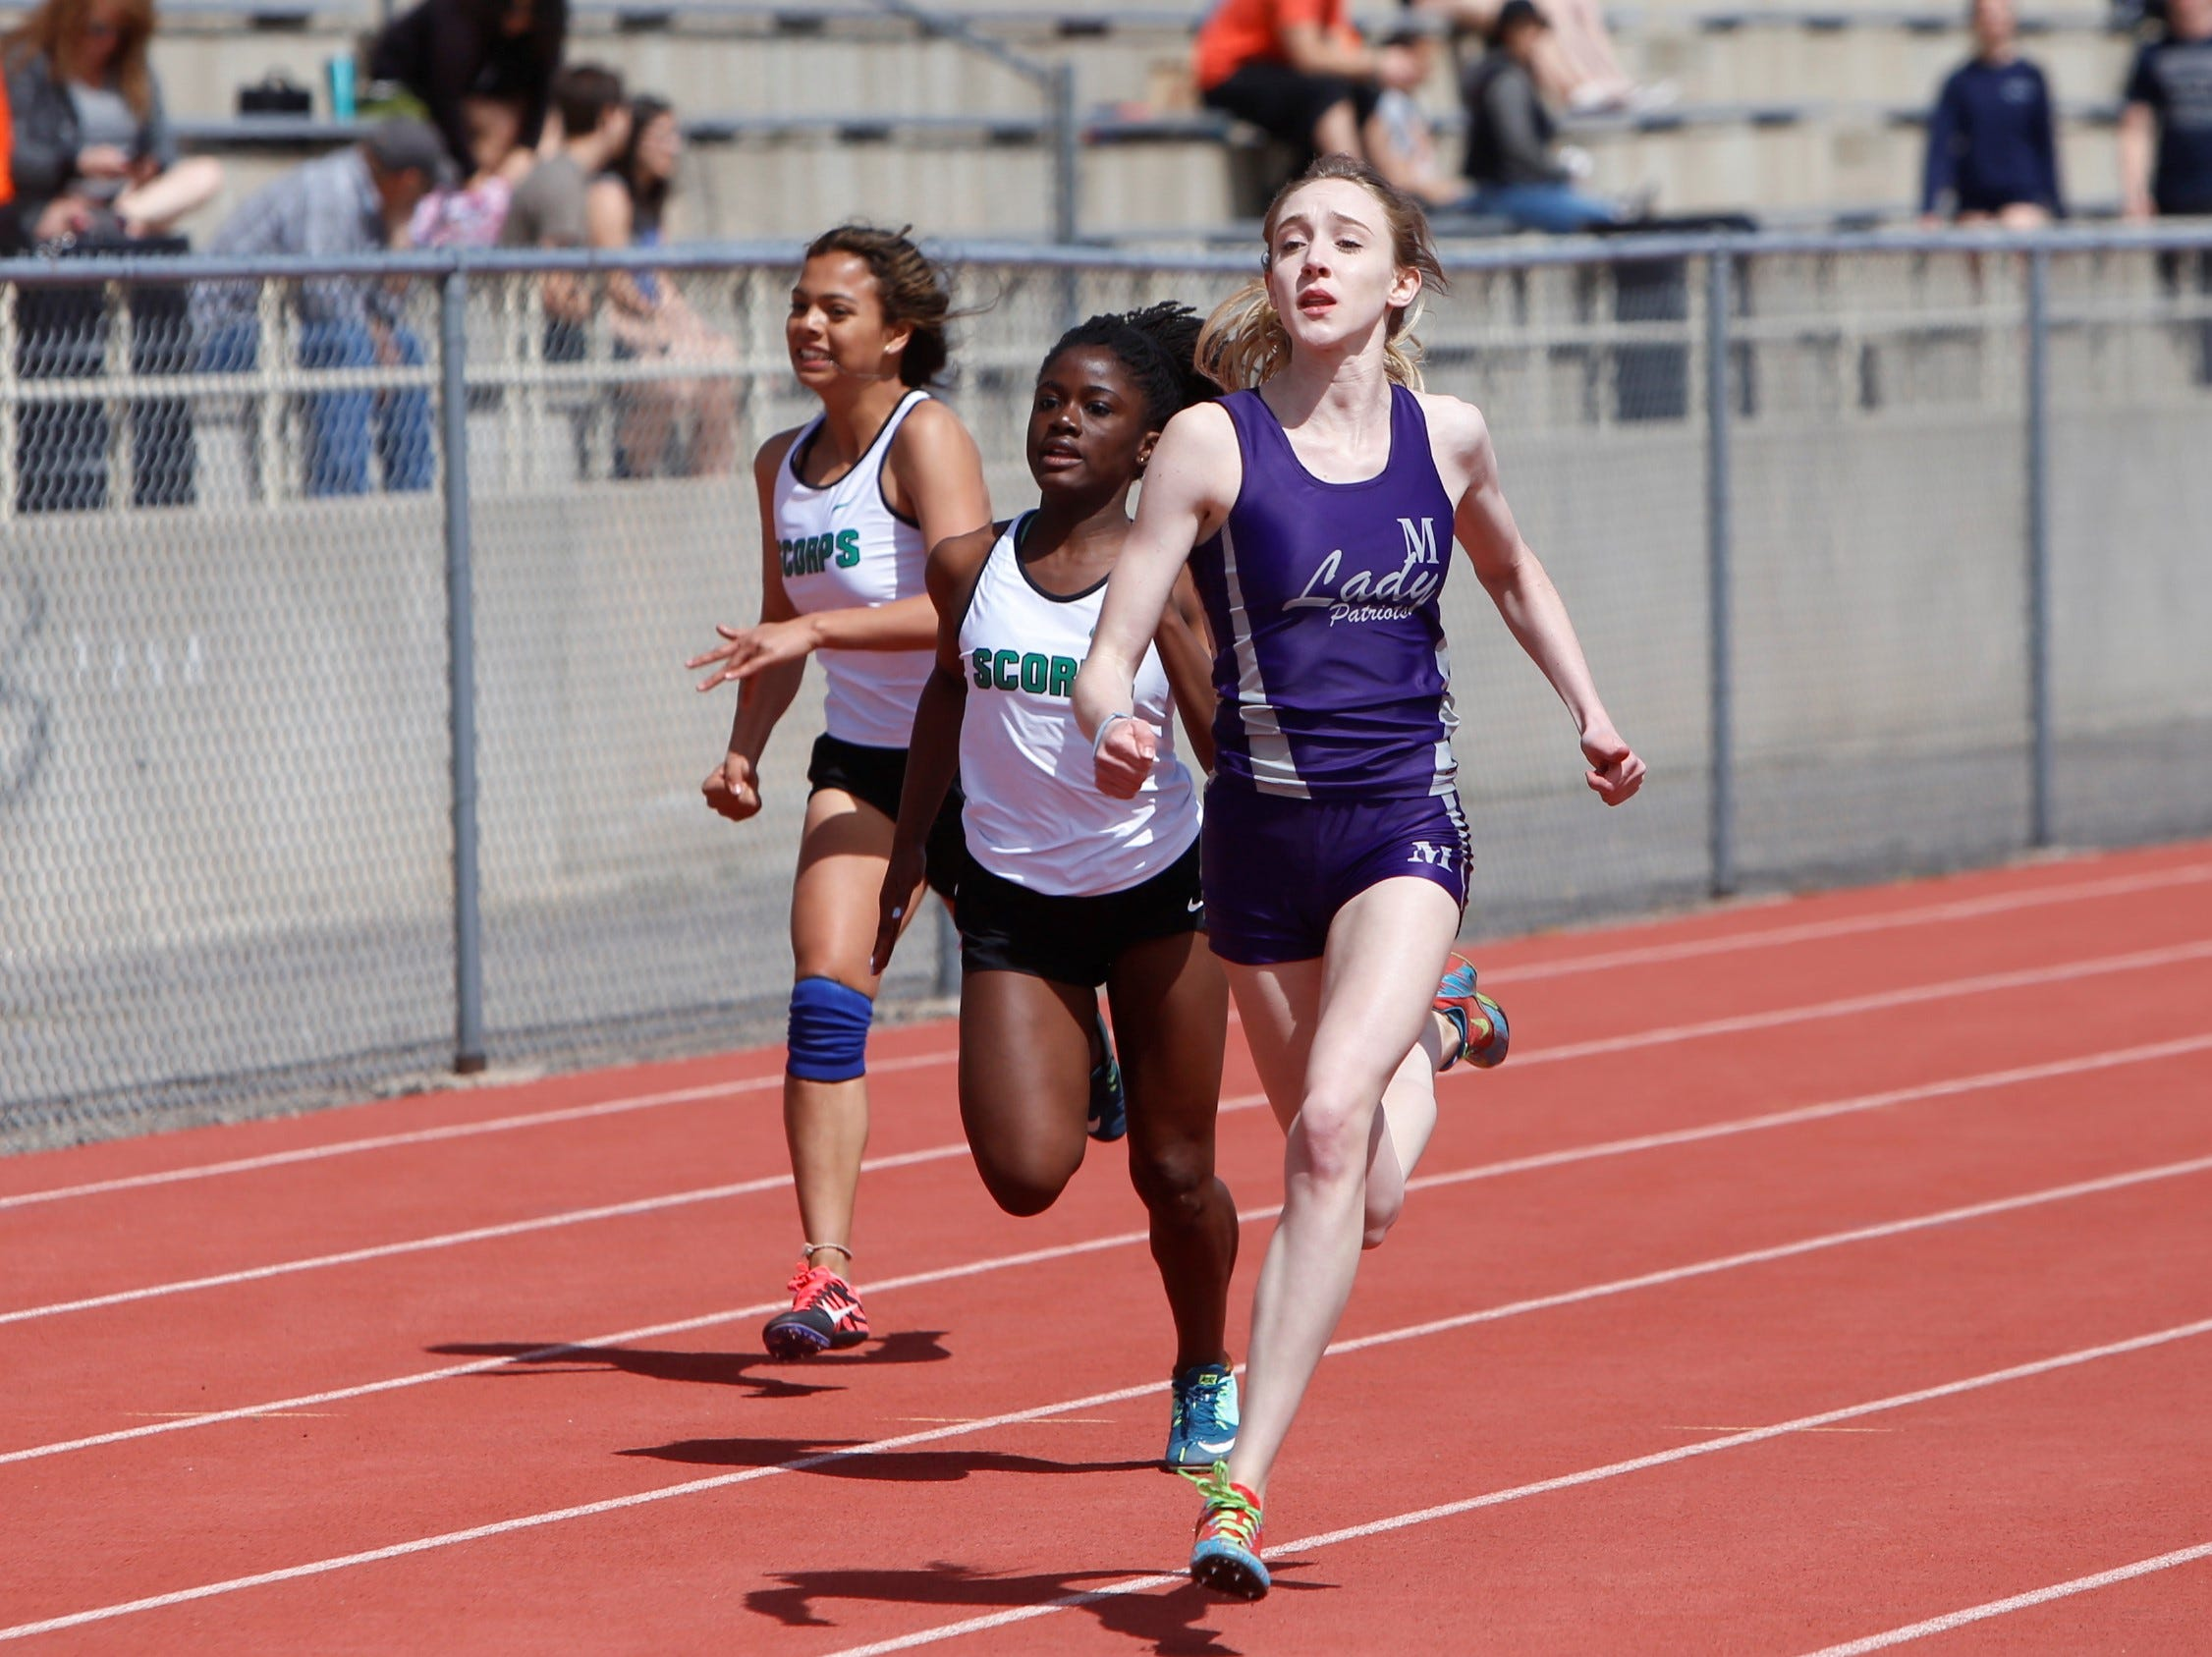 Miyamura's Lauren Cope pulls ahead of Farmington's Jayla Jones (center) in the sixth heat of the girls 100-meter dash during Saturday's FHS Invitational at Hutchison Stadium. Cope placed seventh overall in 13.65 seconds, while Jones was 11th overall in 14.09 seconds.